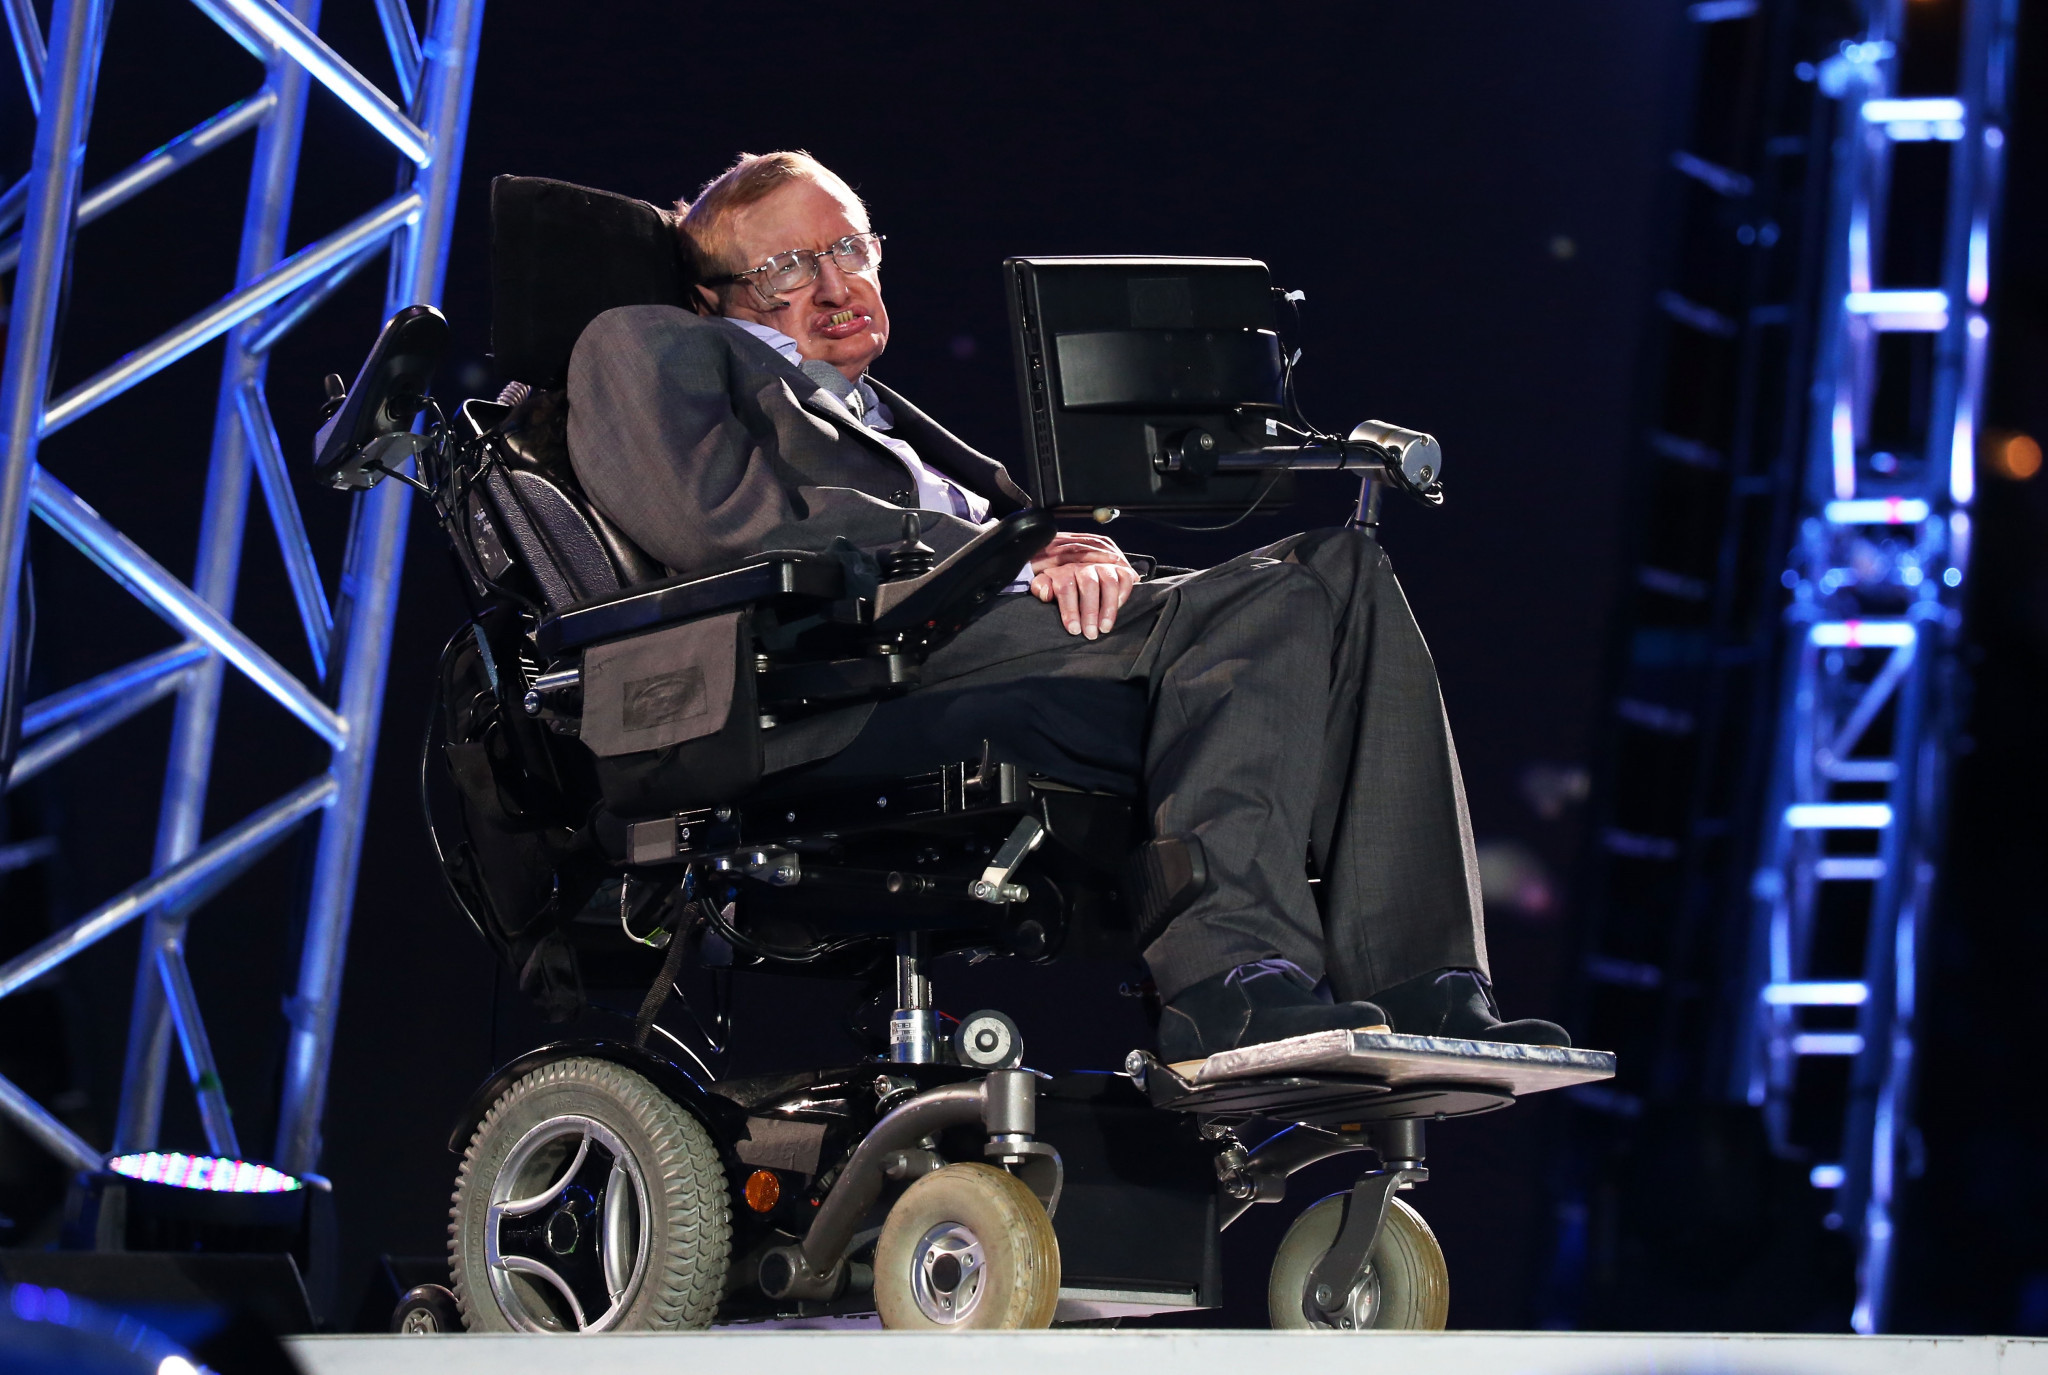 Stephen Hawking spoke during the Opening Ceremony of the London 2012 Paralympic Games ©Getty Images